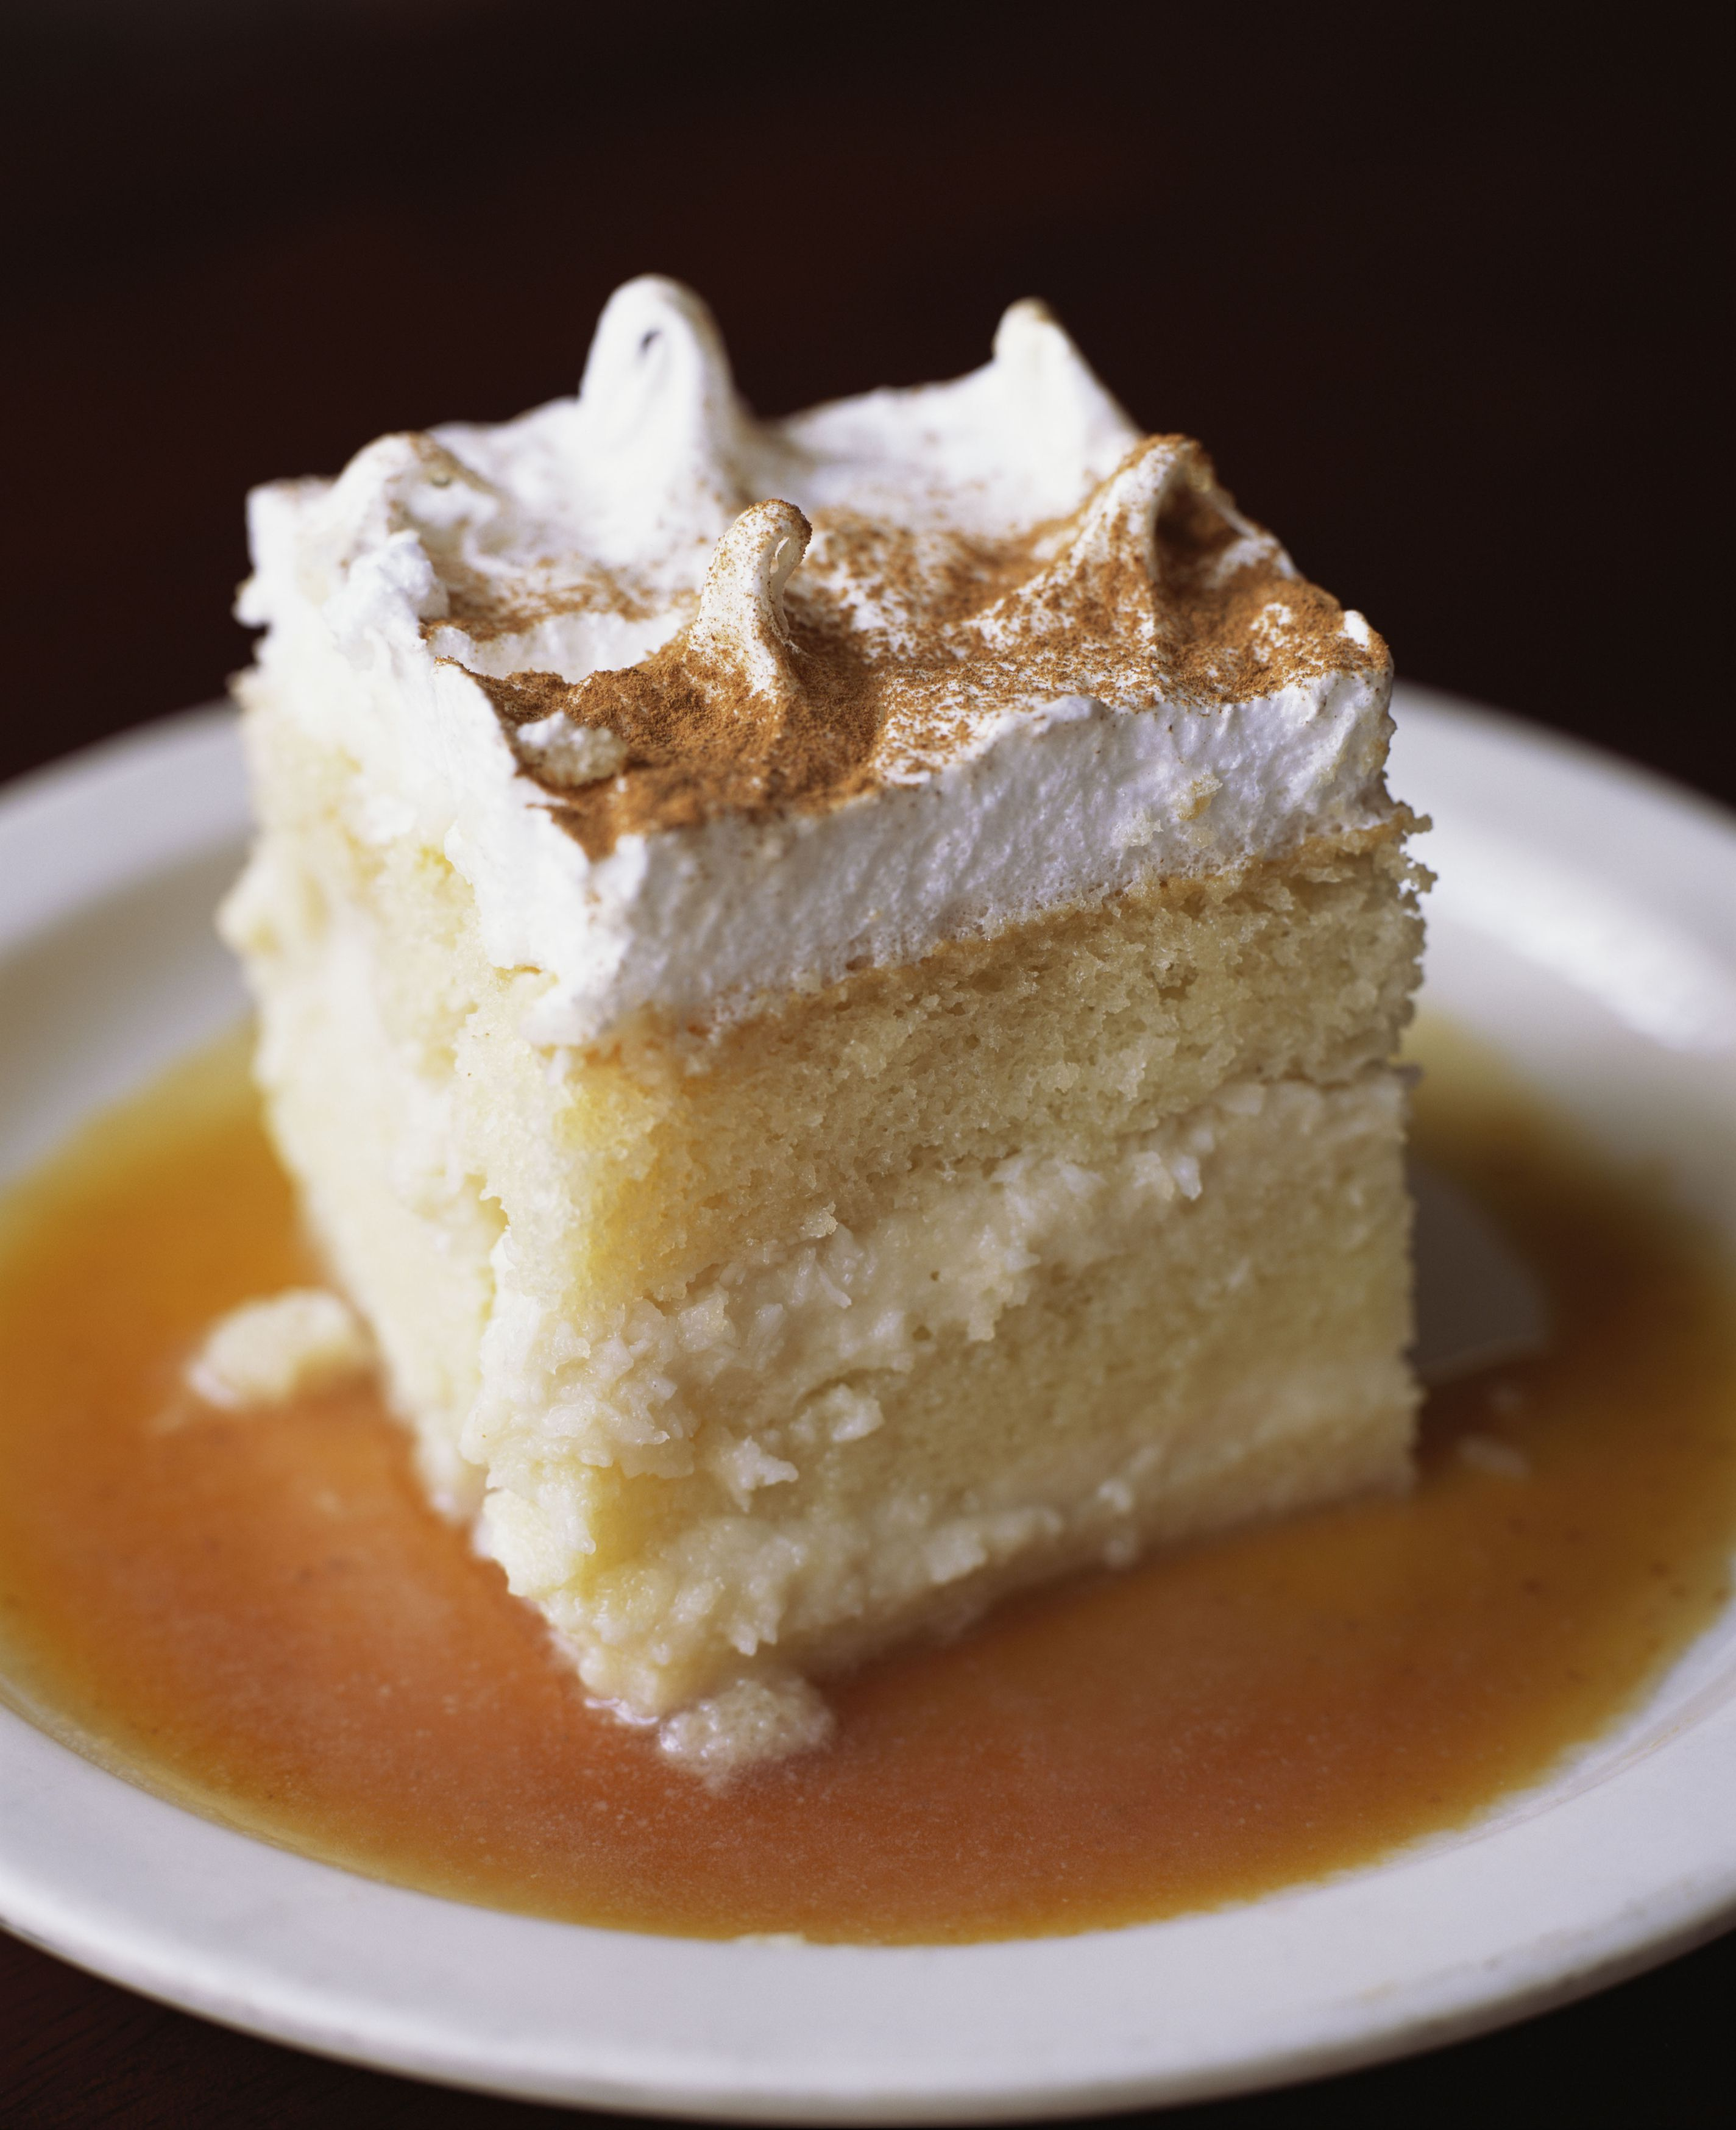 A Super-Easy Recipe for Pastel de Tres Leches, or Tres Leches Cake